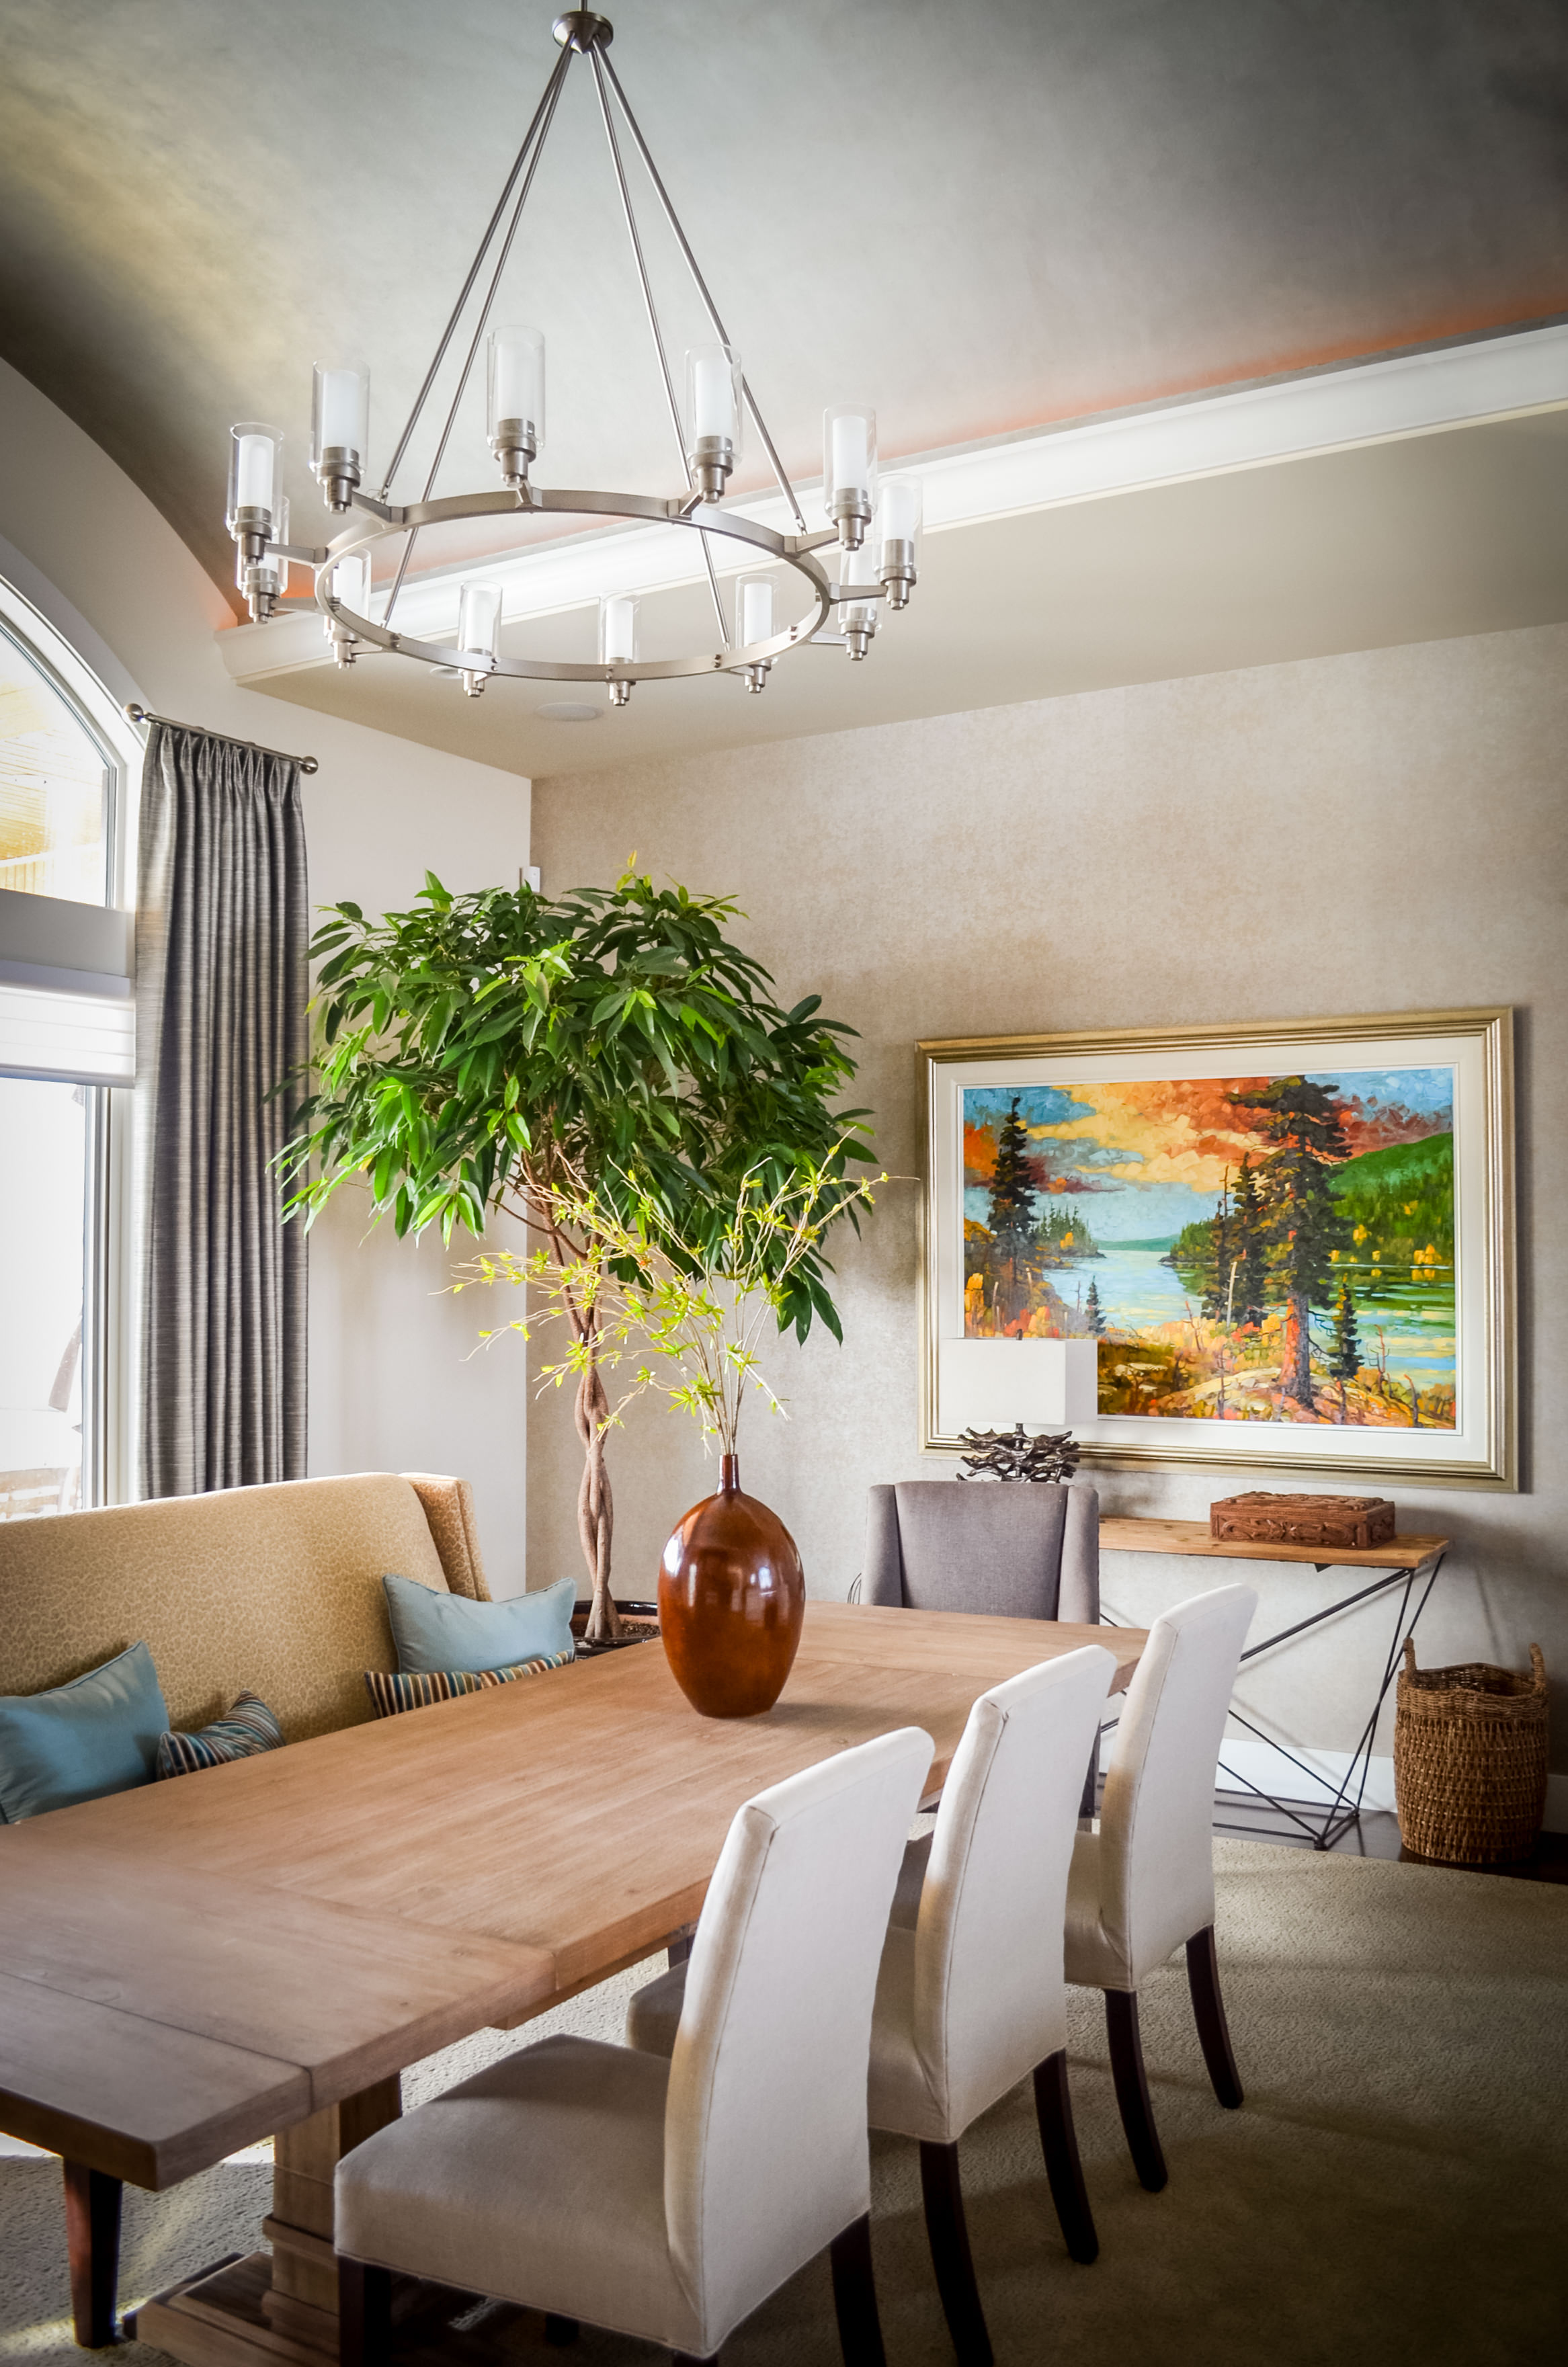 Delightful Dining Room photo - 6